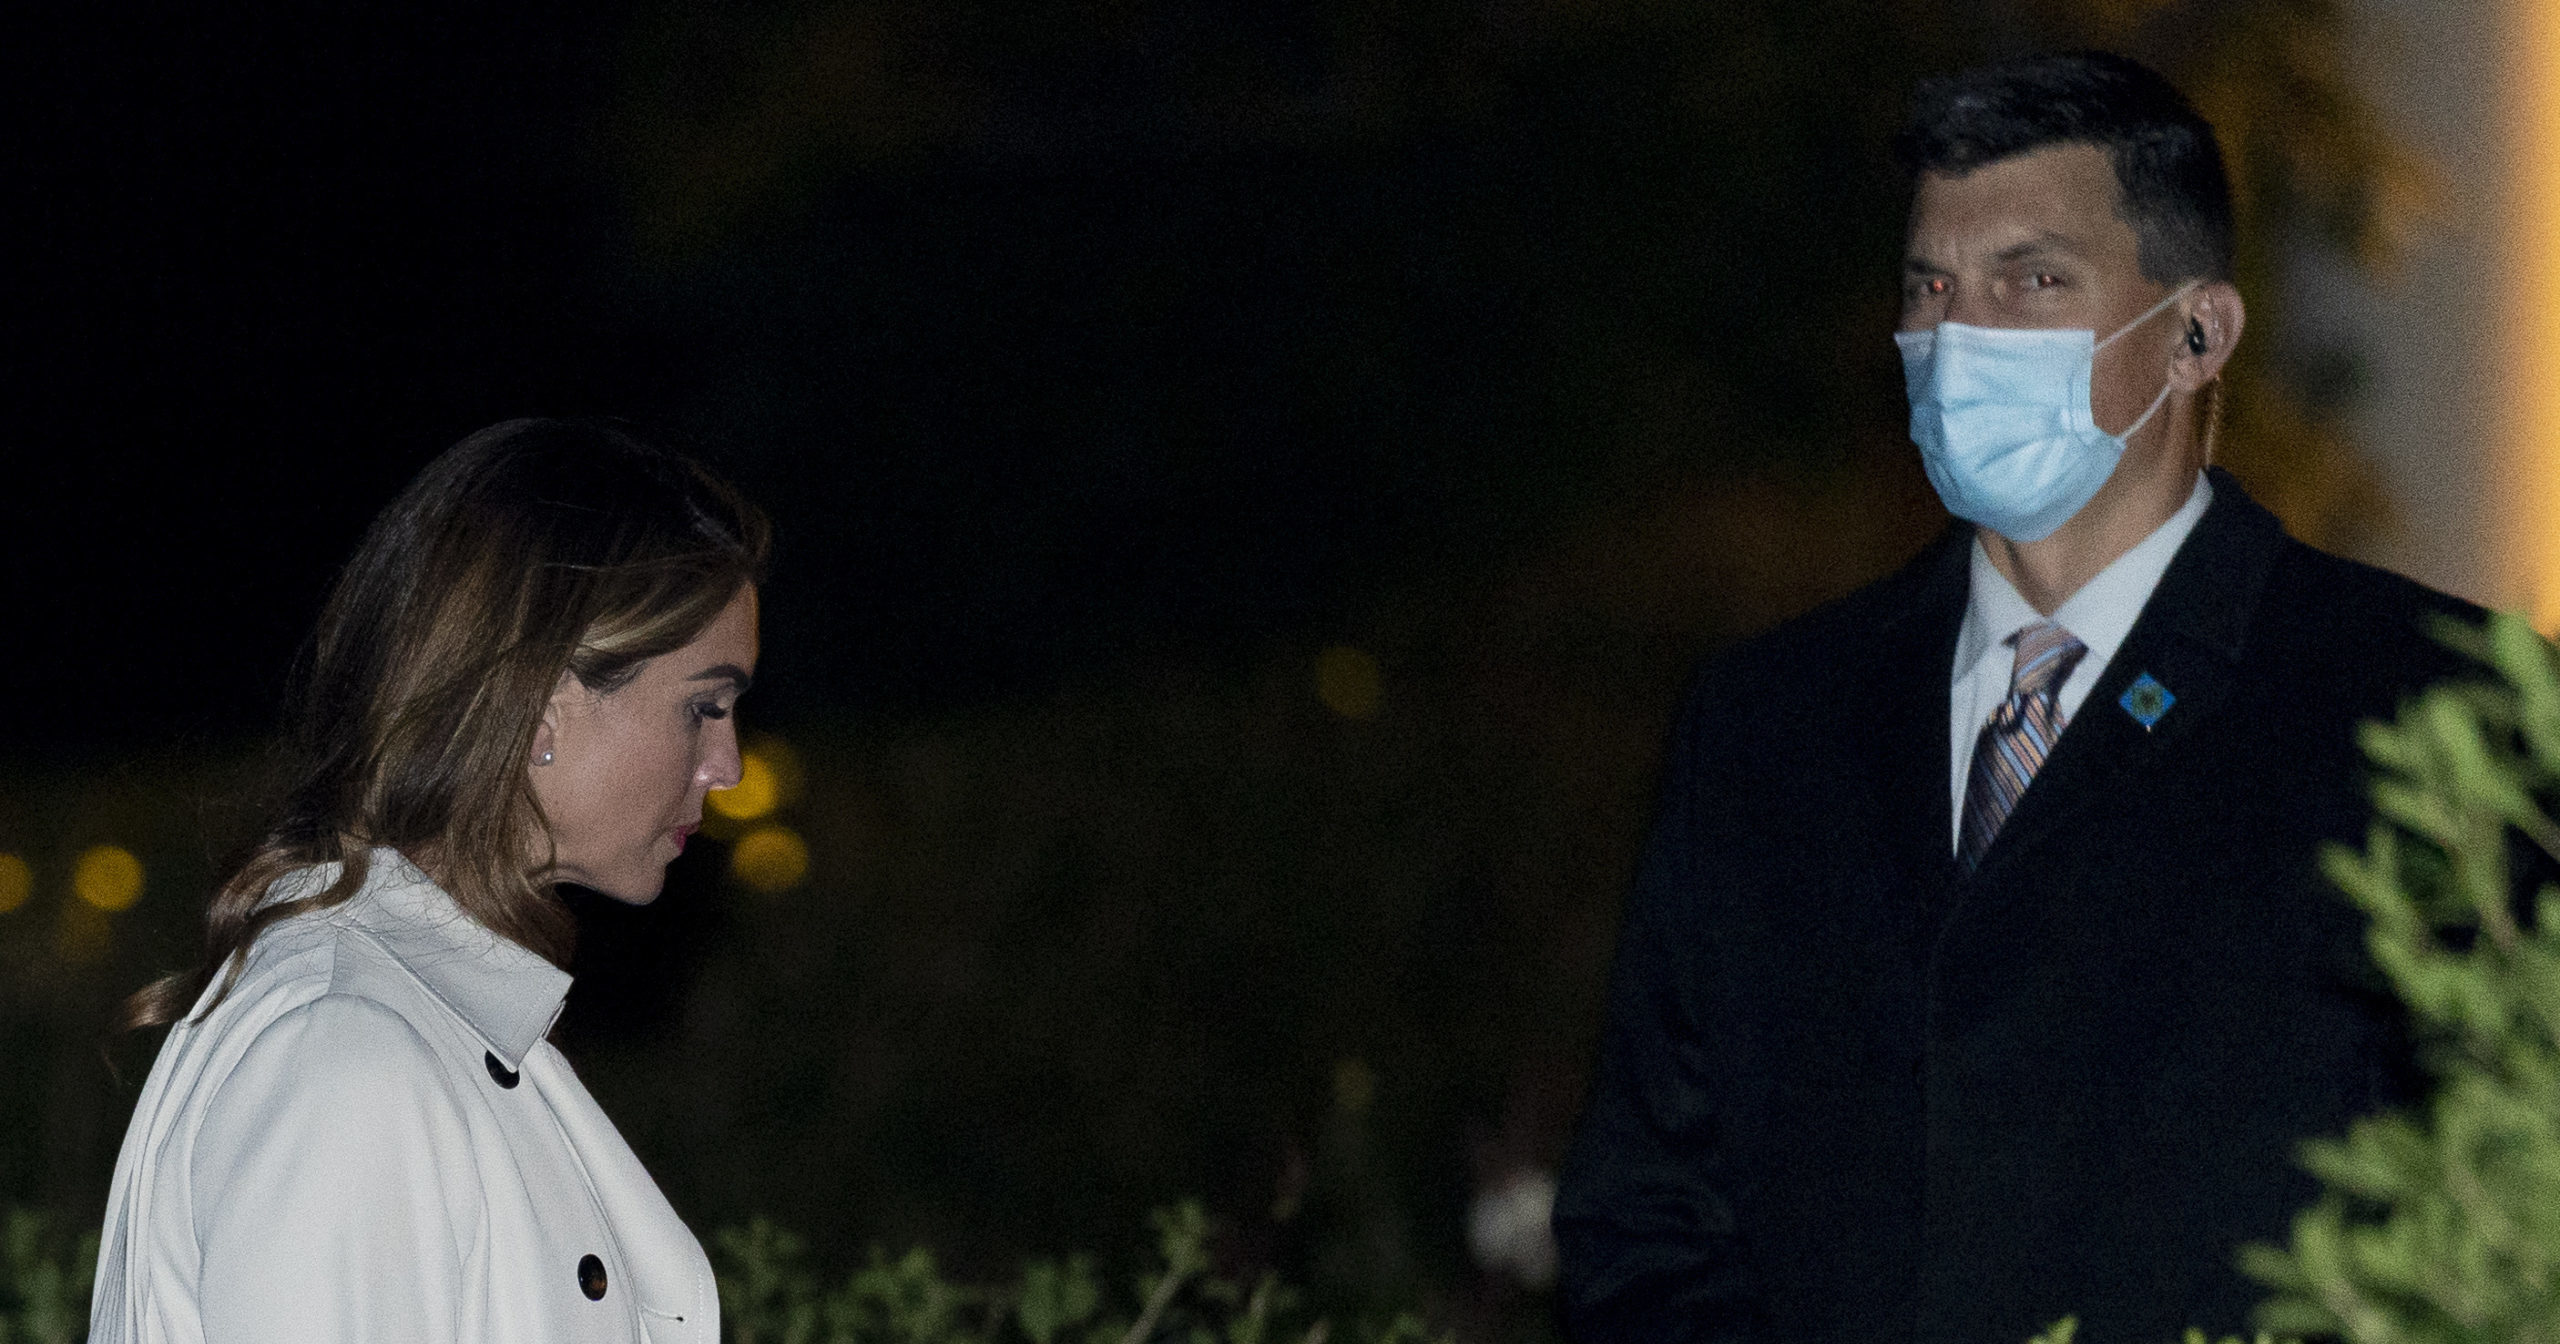 Counselor to the President Hope Hicks, left, arrives at the White House in Washington, late Monday, Sept. 21, 2020, after attending rallies in Ohio with President Donald Trump.